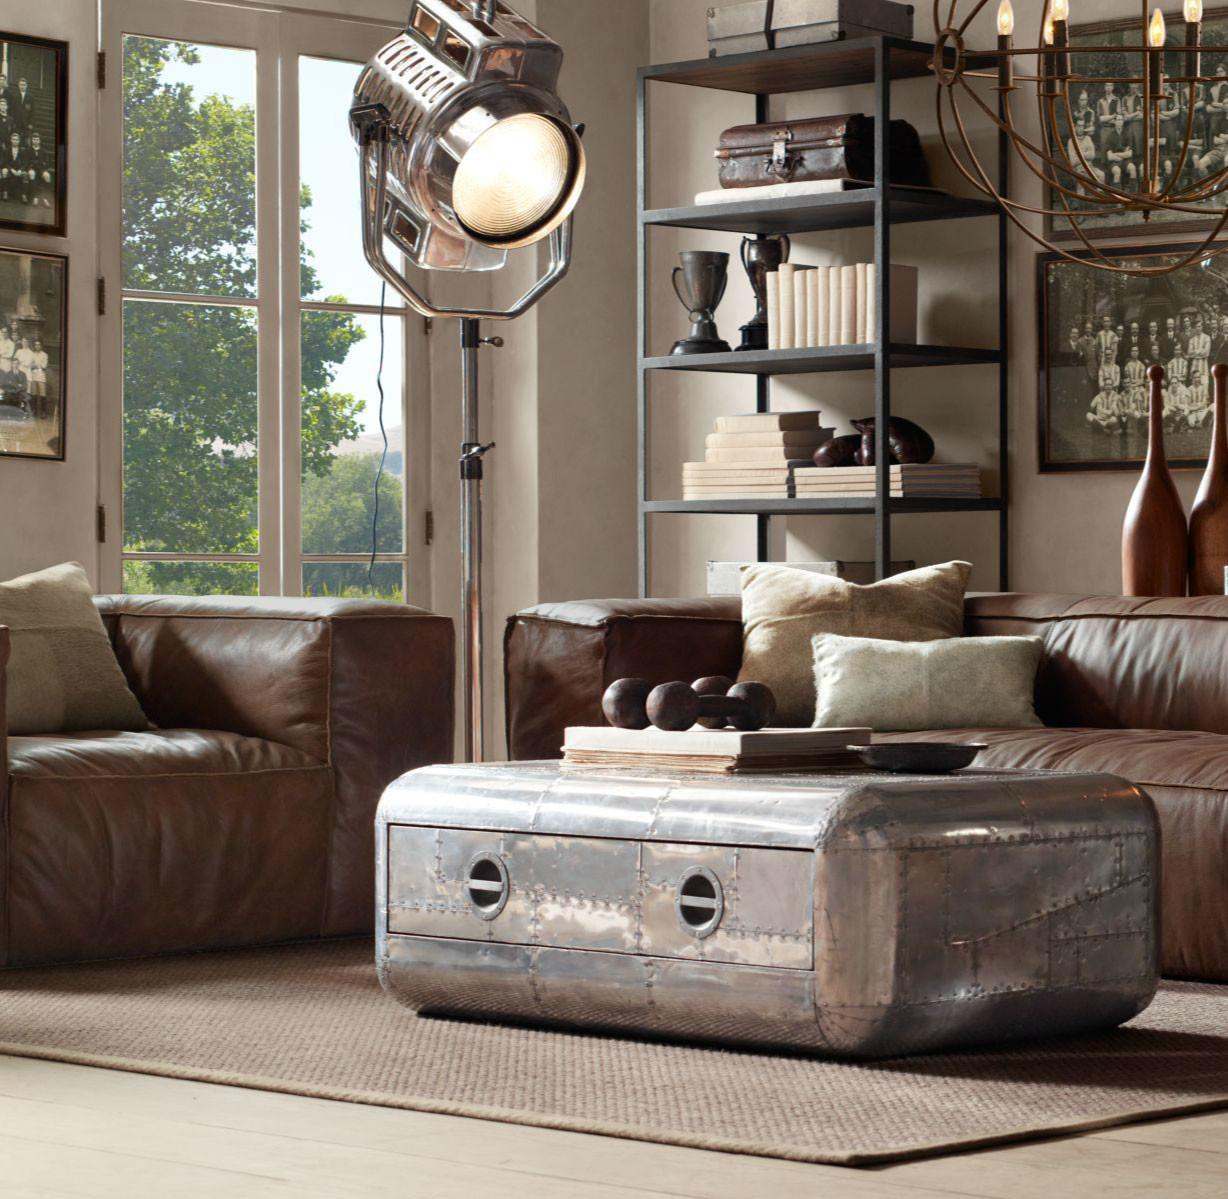 Blackhawk Coffee Table Restoration Hardware Ideasgn